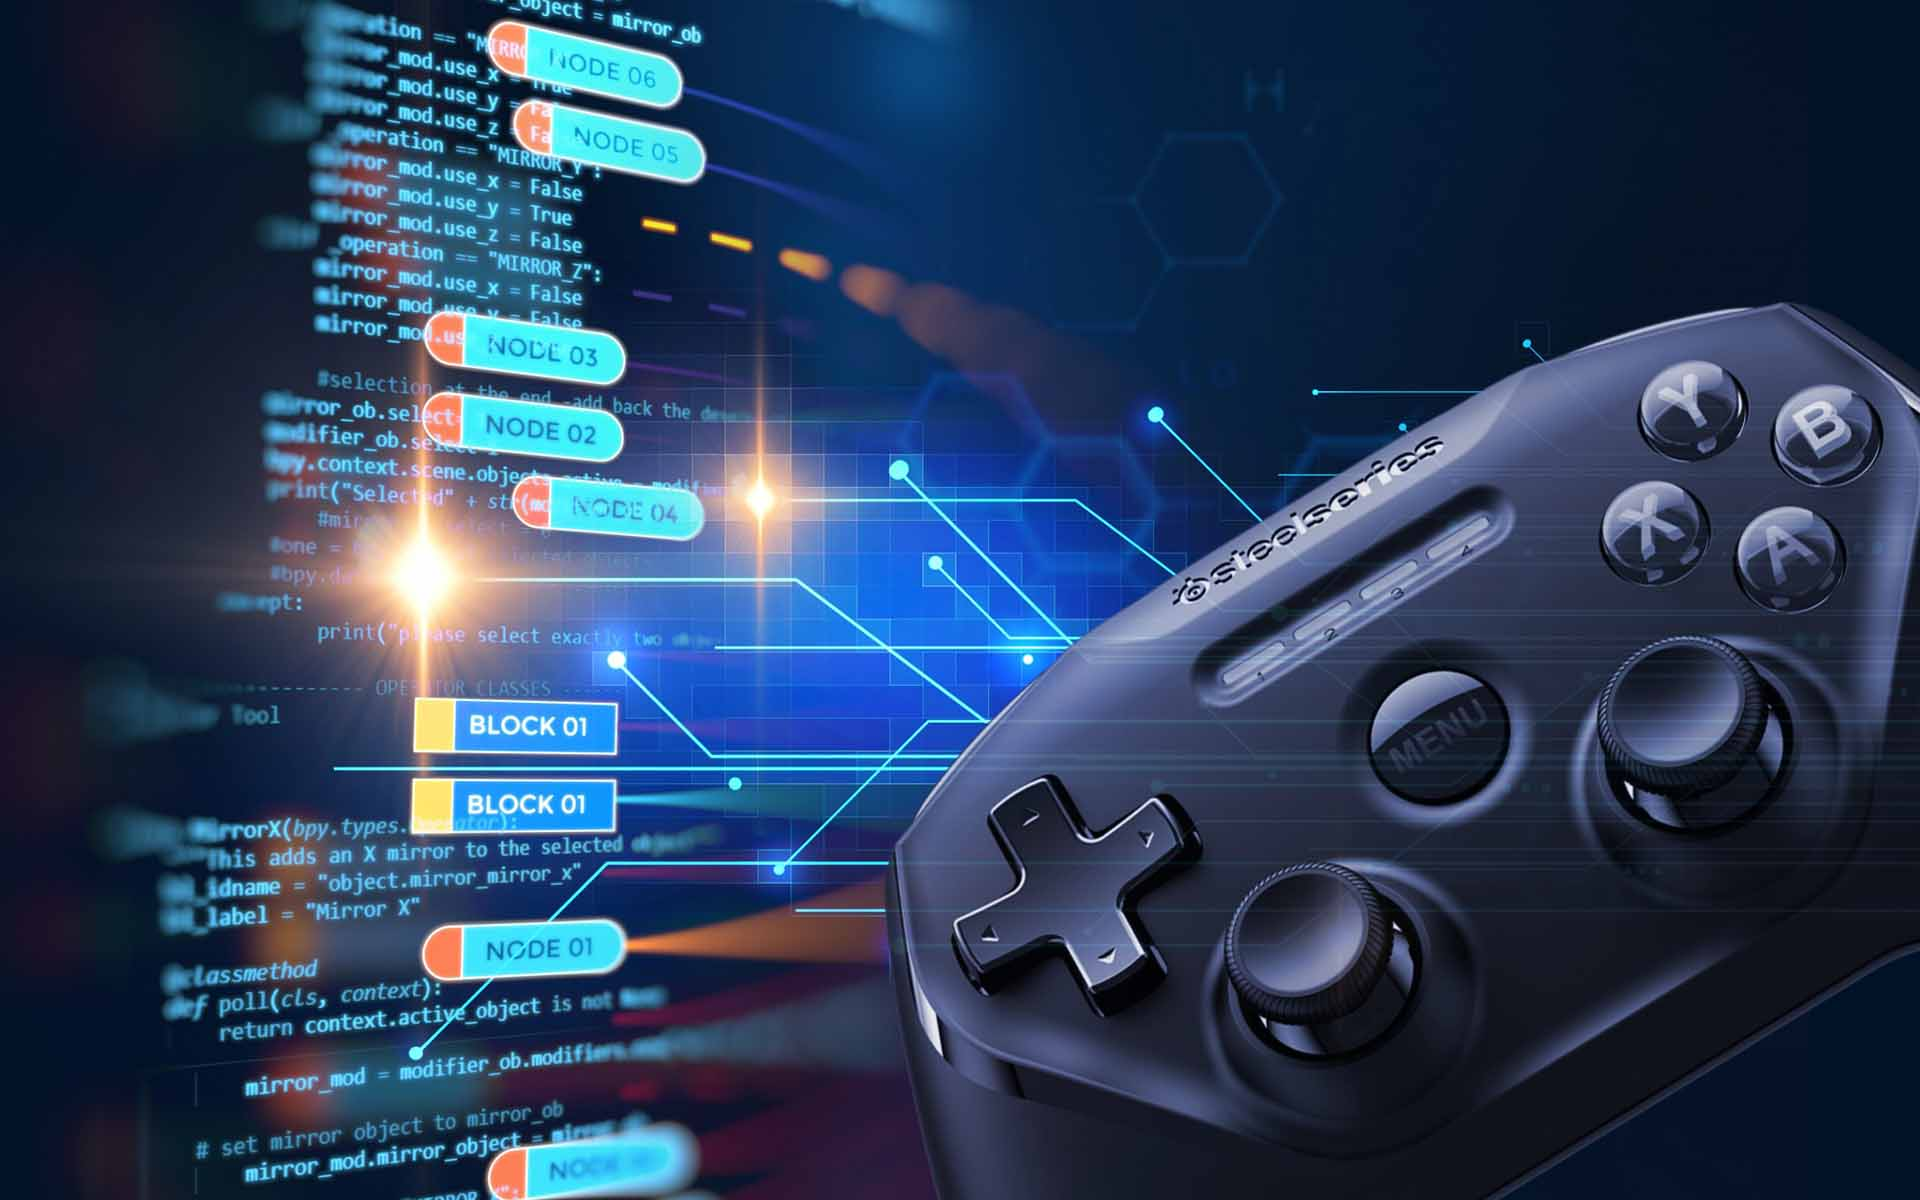 Institutional Support Rallies Behind Exeedme's Blockchain-based Gaming Innovation